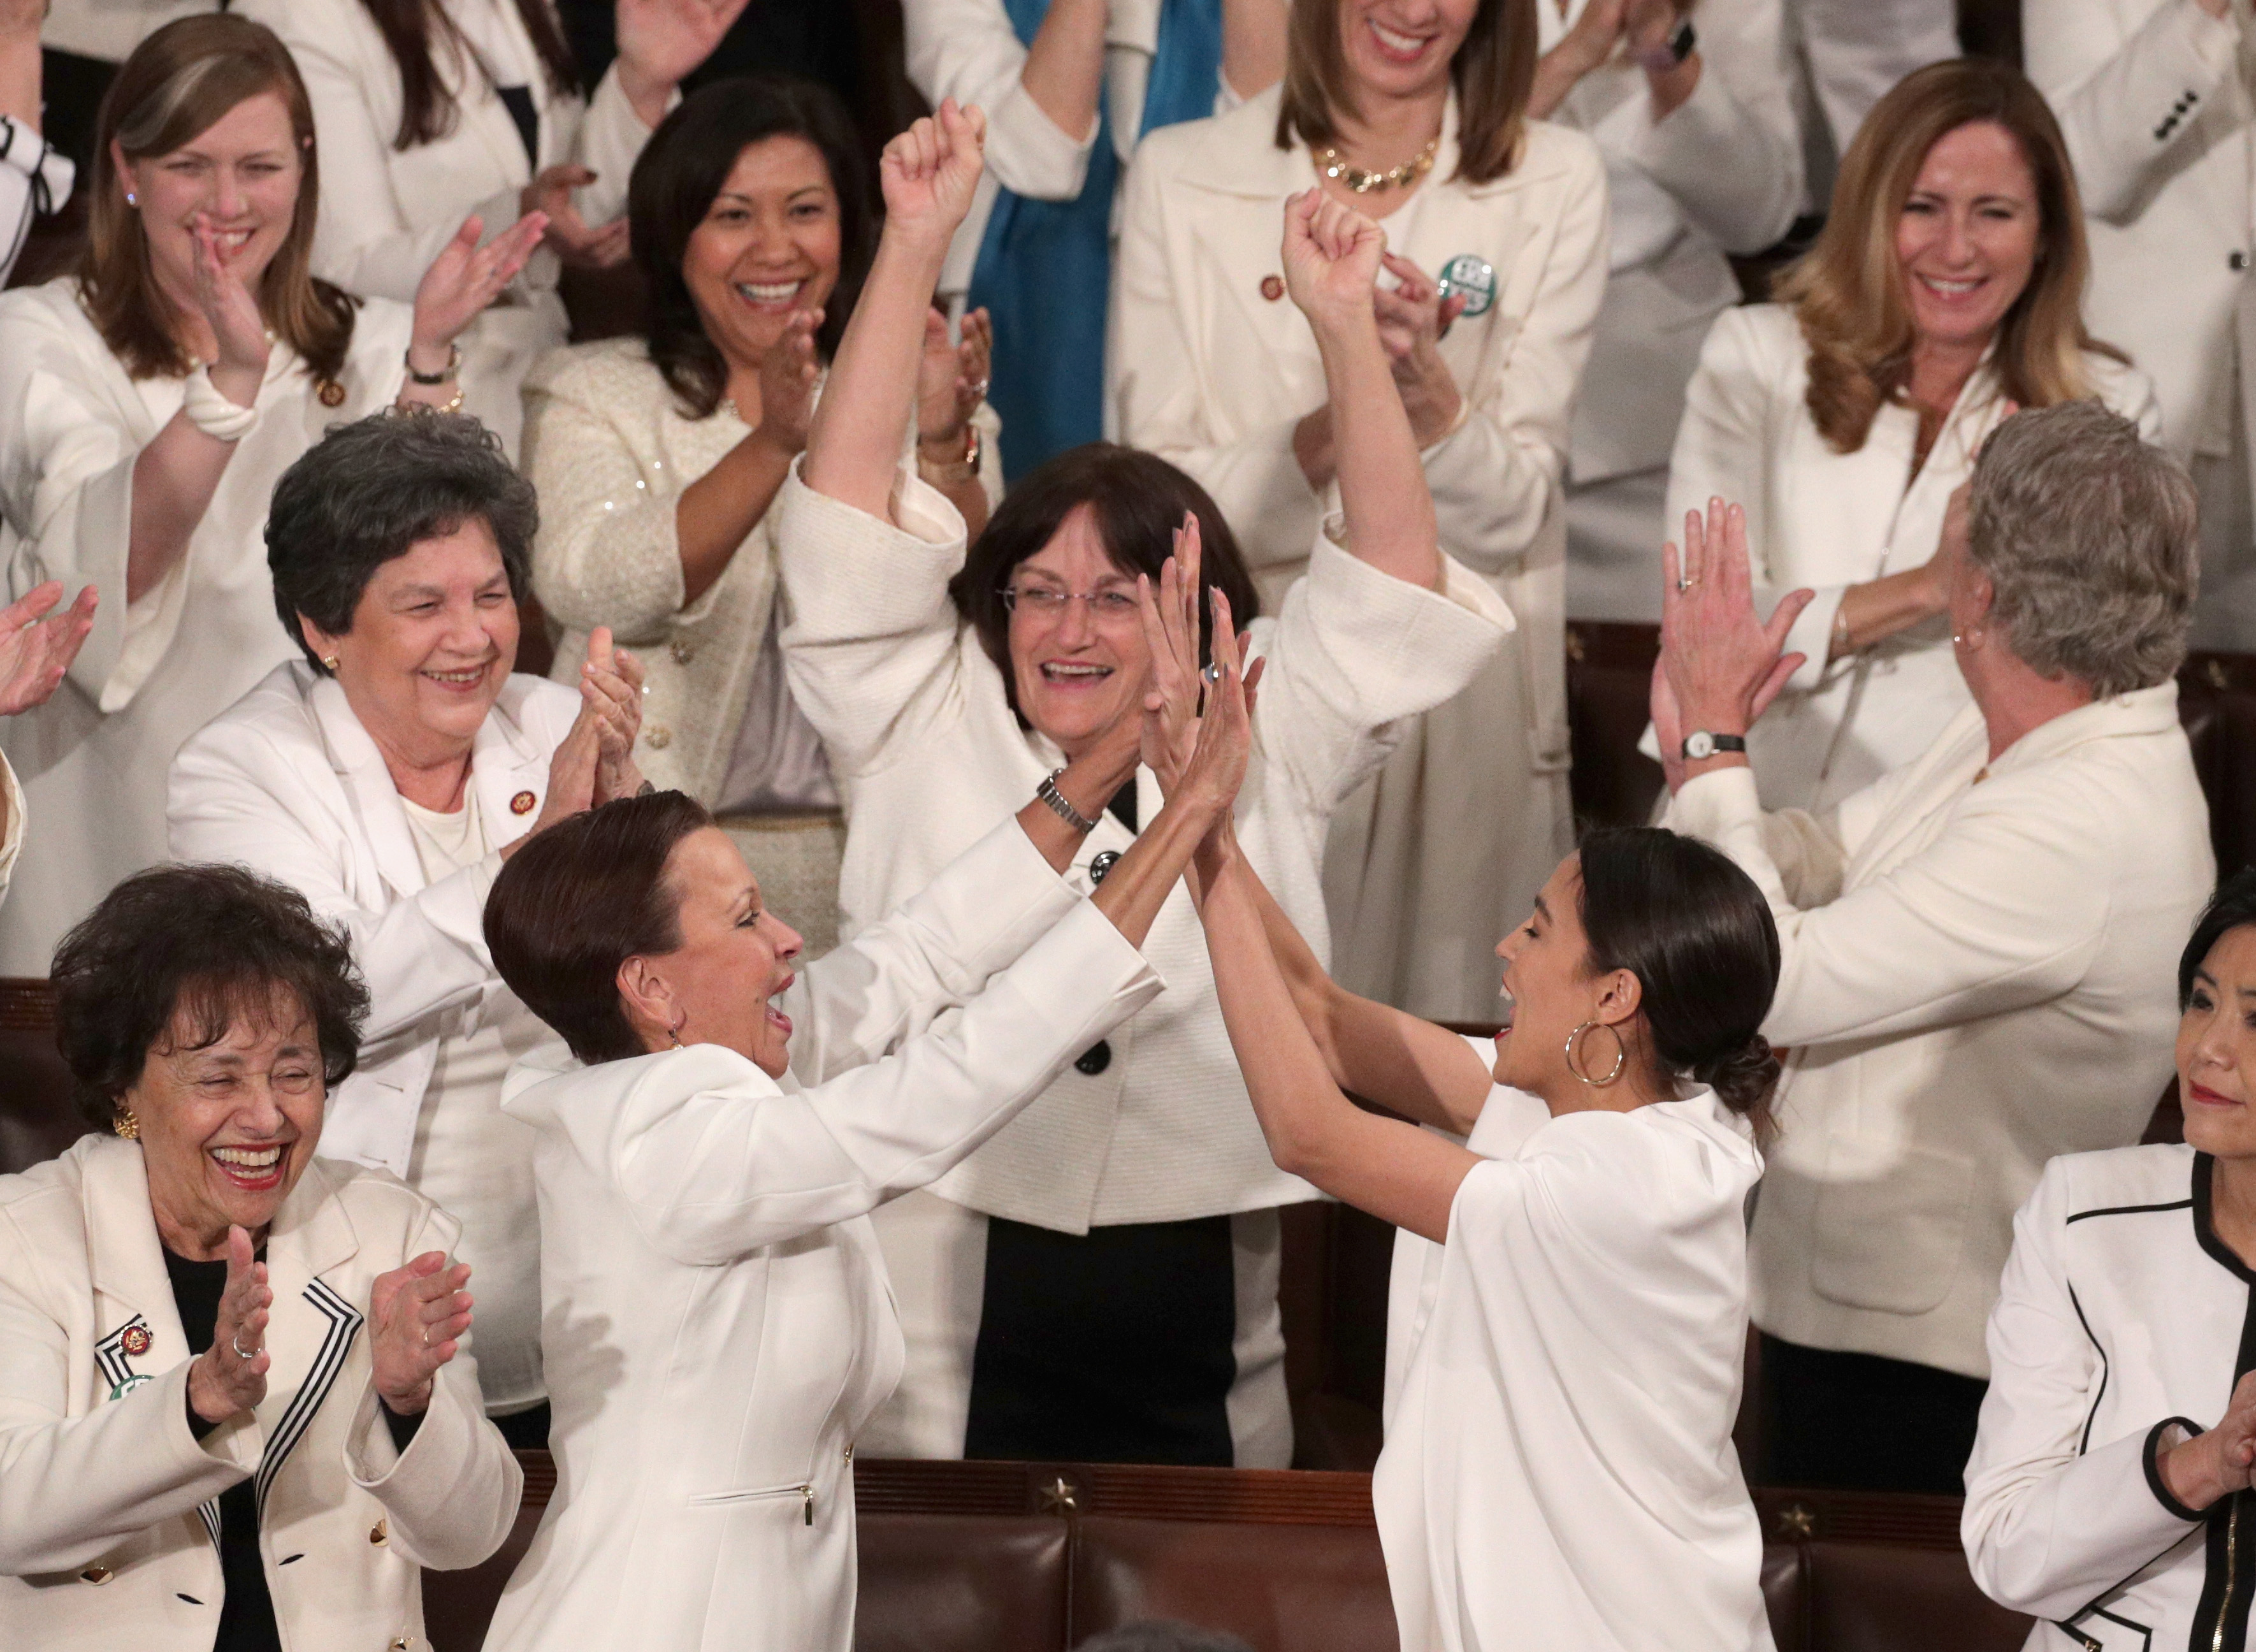 Rep. Alexandria Ocasio-Cortez (D-NY) and other female lawmakers cheer during President Donald Trump's State of the Union address in the chamber of the U.S. House of Representatives at the U.S. Capitol Building on February 5, 2019 in Washington, D.C.